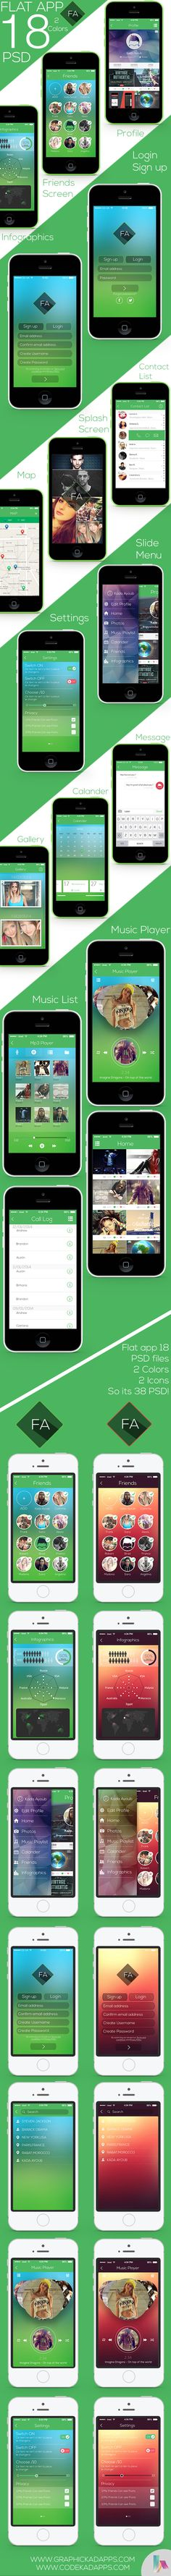 Flat app Ui Full Project Free Download by Graphic Kadapps, via Behance